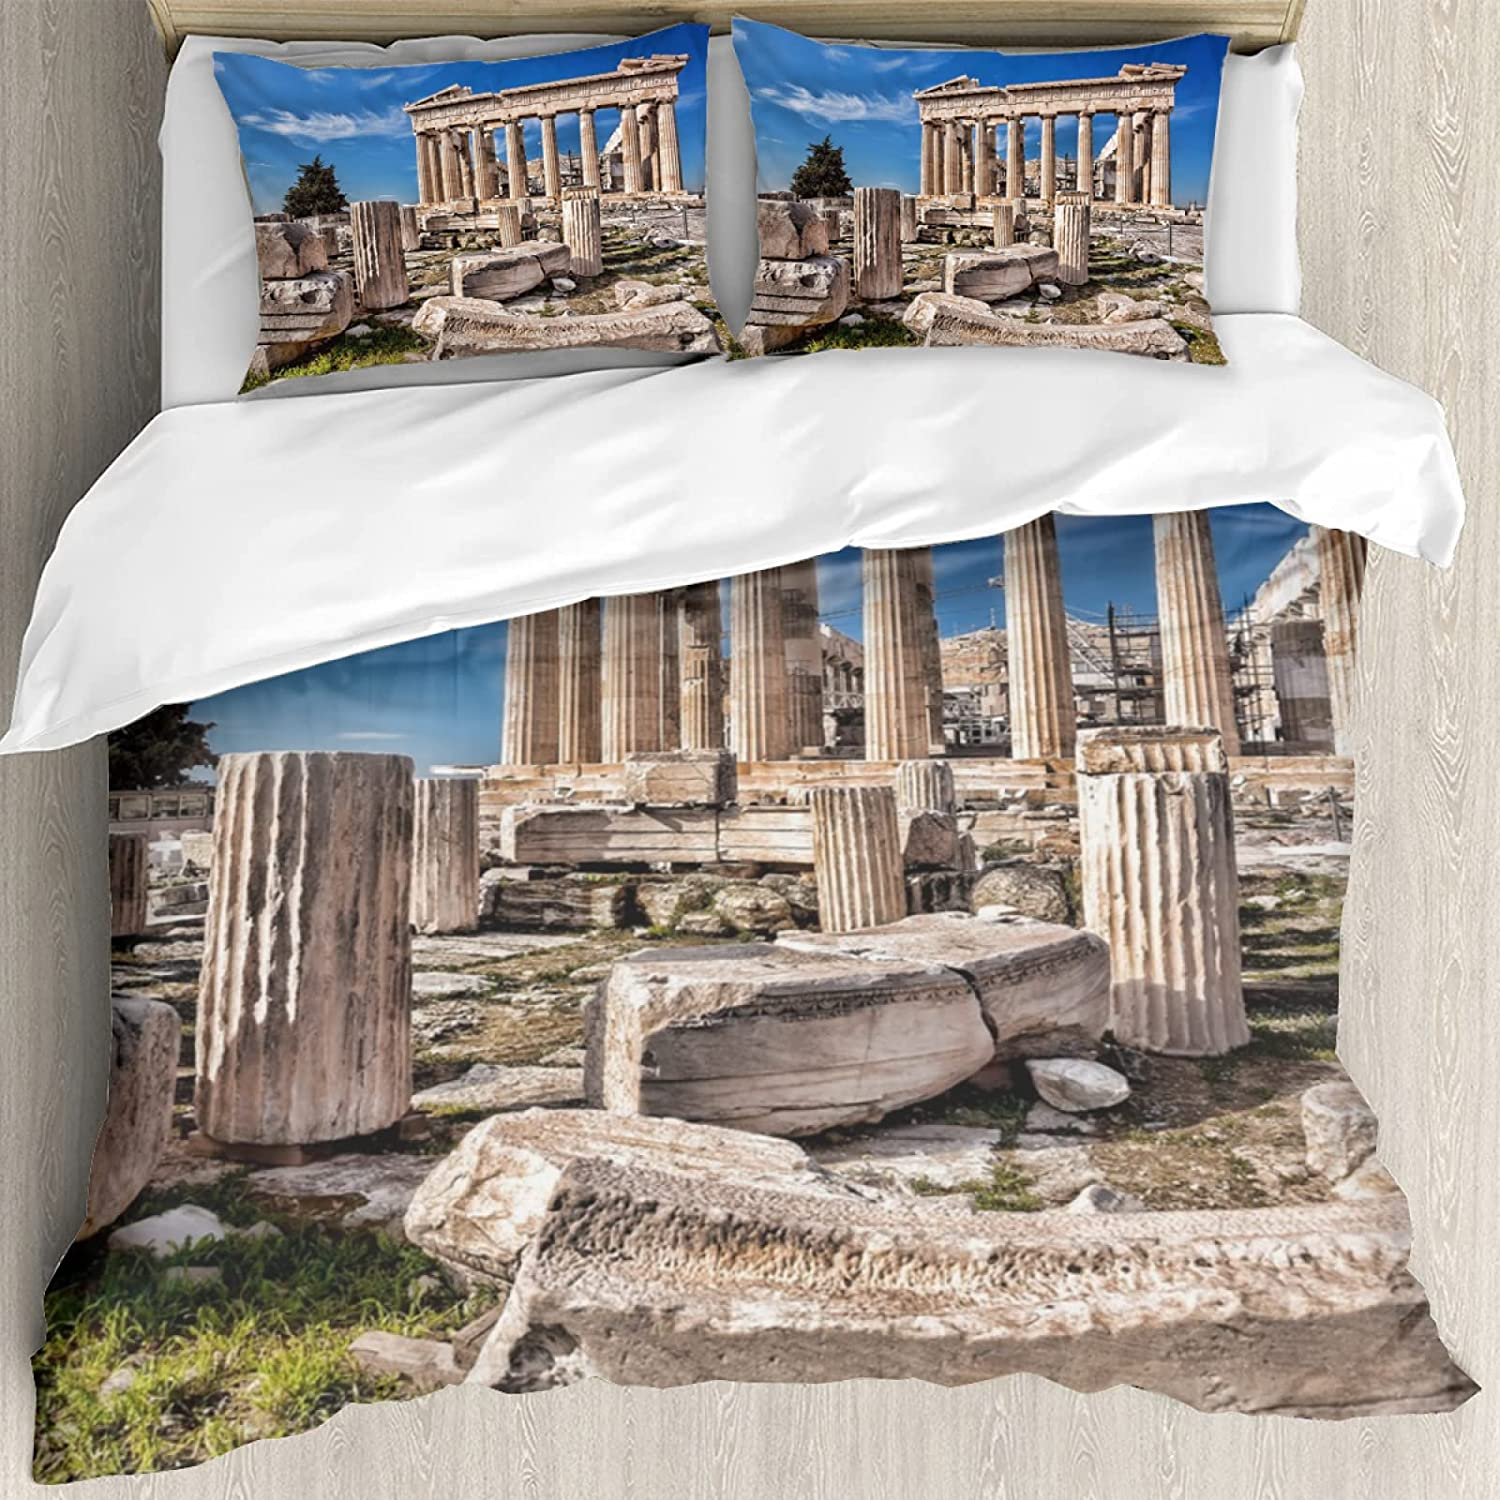 3 Pieces of gift Bedding Set Parthenon The in Temple Ath Acropolis on Cheap mail order sales